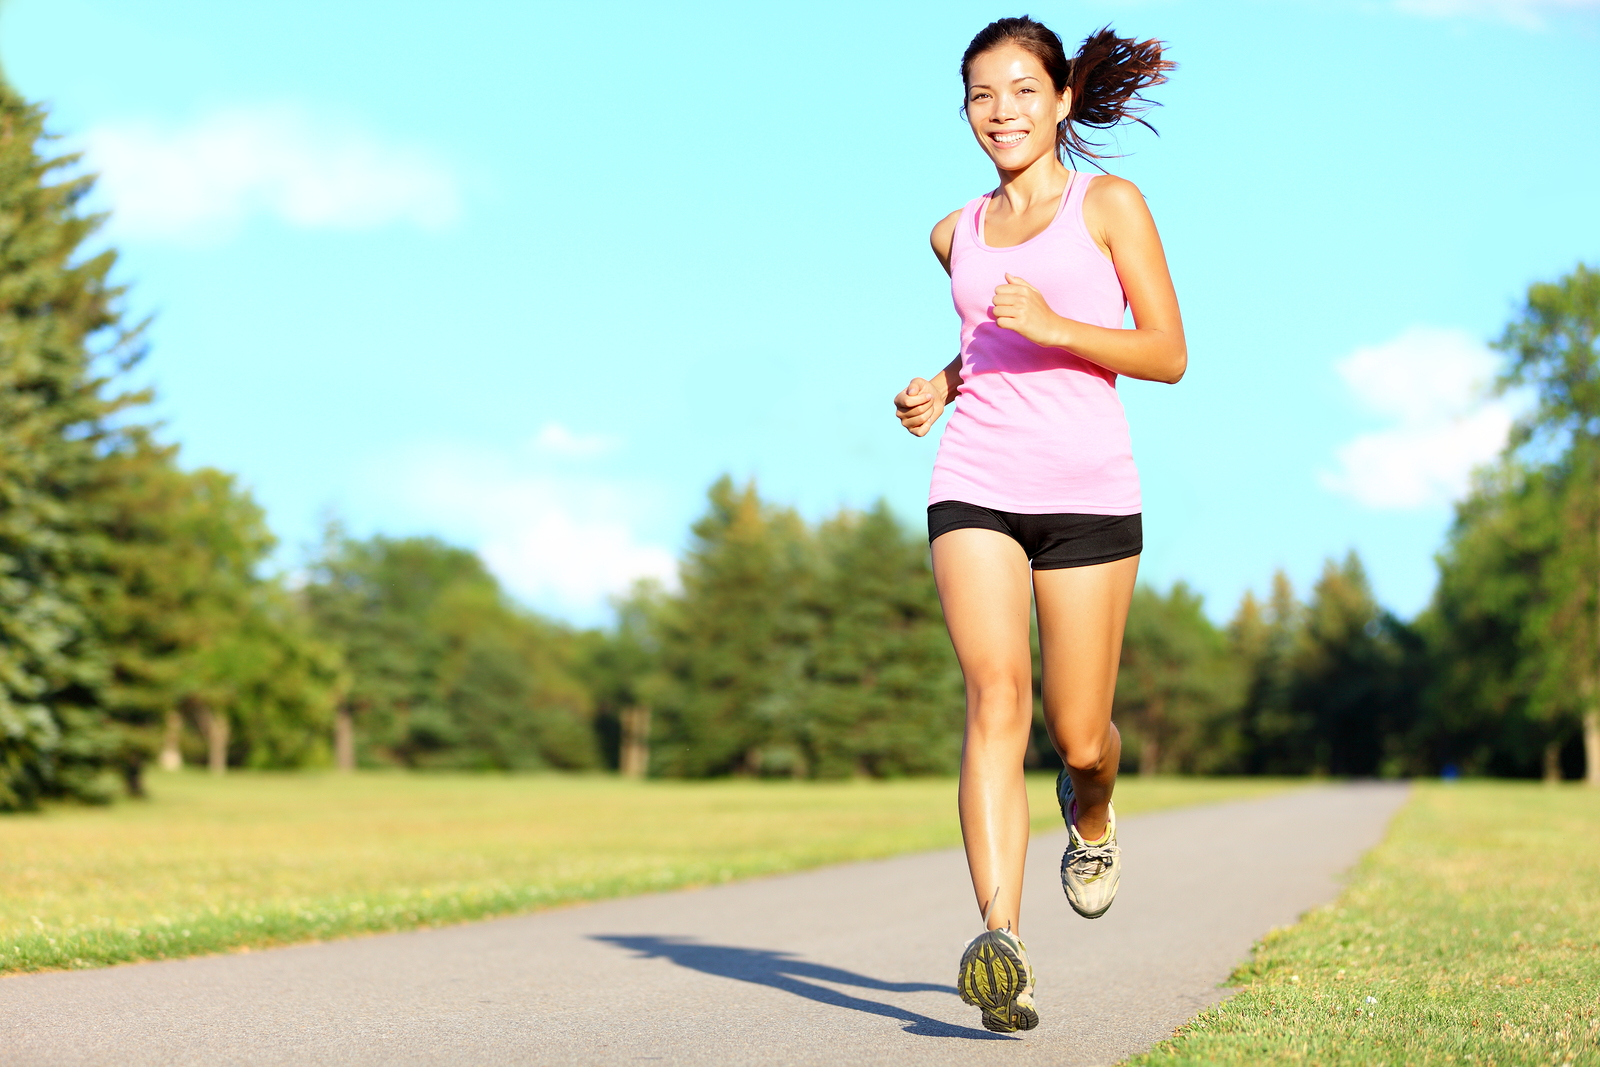 Sport fitness woman running in park on summer day. Asian female